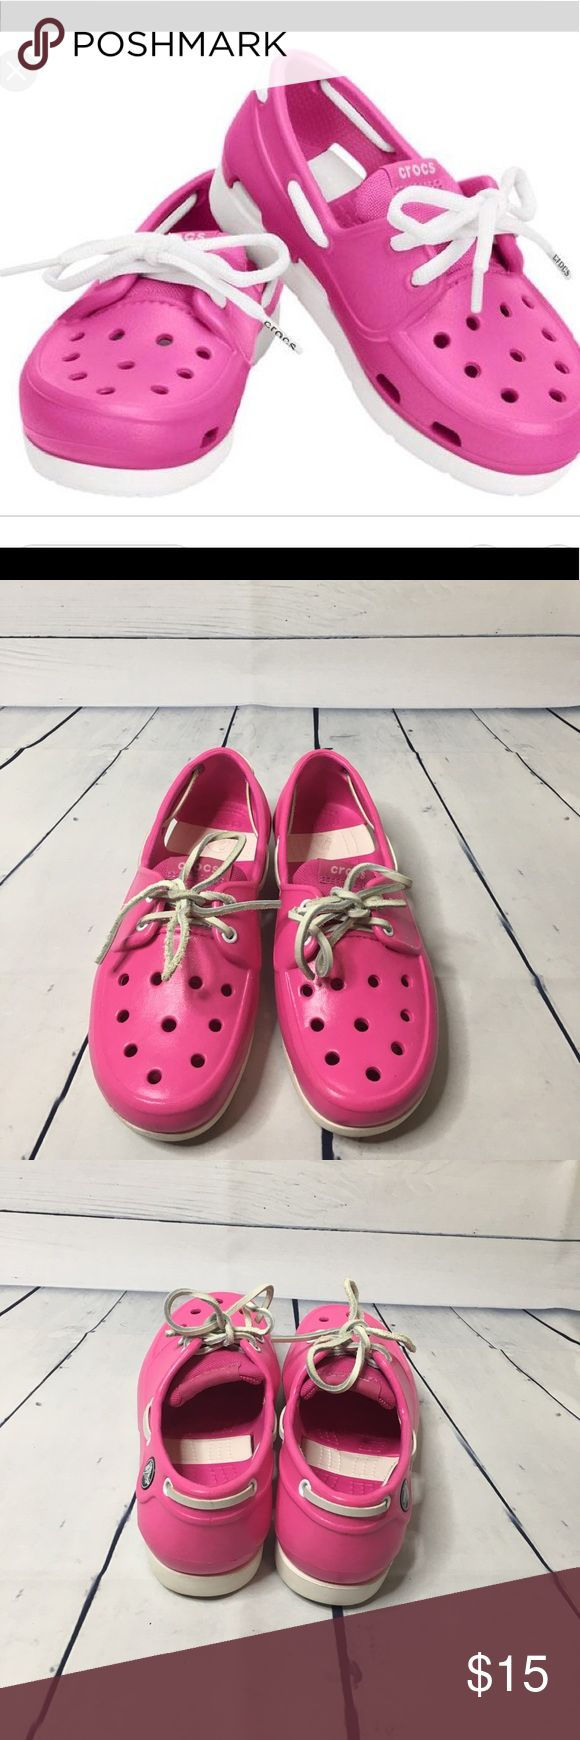 Crocs Beach Line Boat Lace Pink and white Size J 2 Crocs Beach Line Boat Lace Pink and white Size J 2. They are in great preowned condition.  The boat shoe with a stay-on, lace-up fit. The Croslite material is incredibly light, and unlike traditional leather styles it can actually get wet without worry. Nautical design and style with a Crocs comfort twist. CROCS Shoes Sandals & Flip Flops